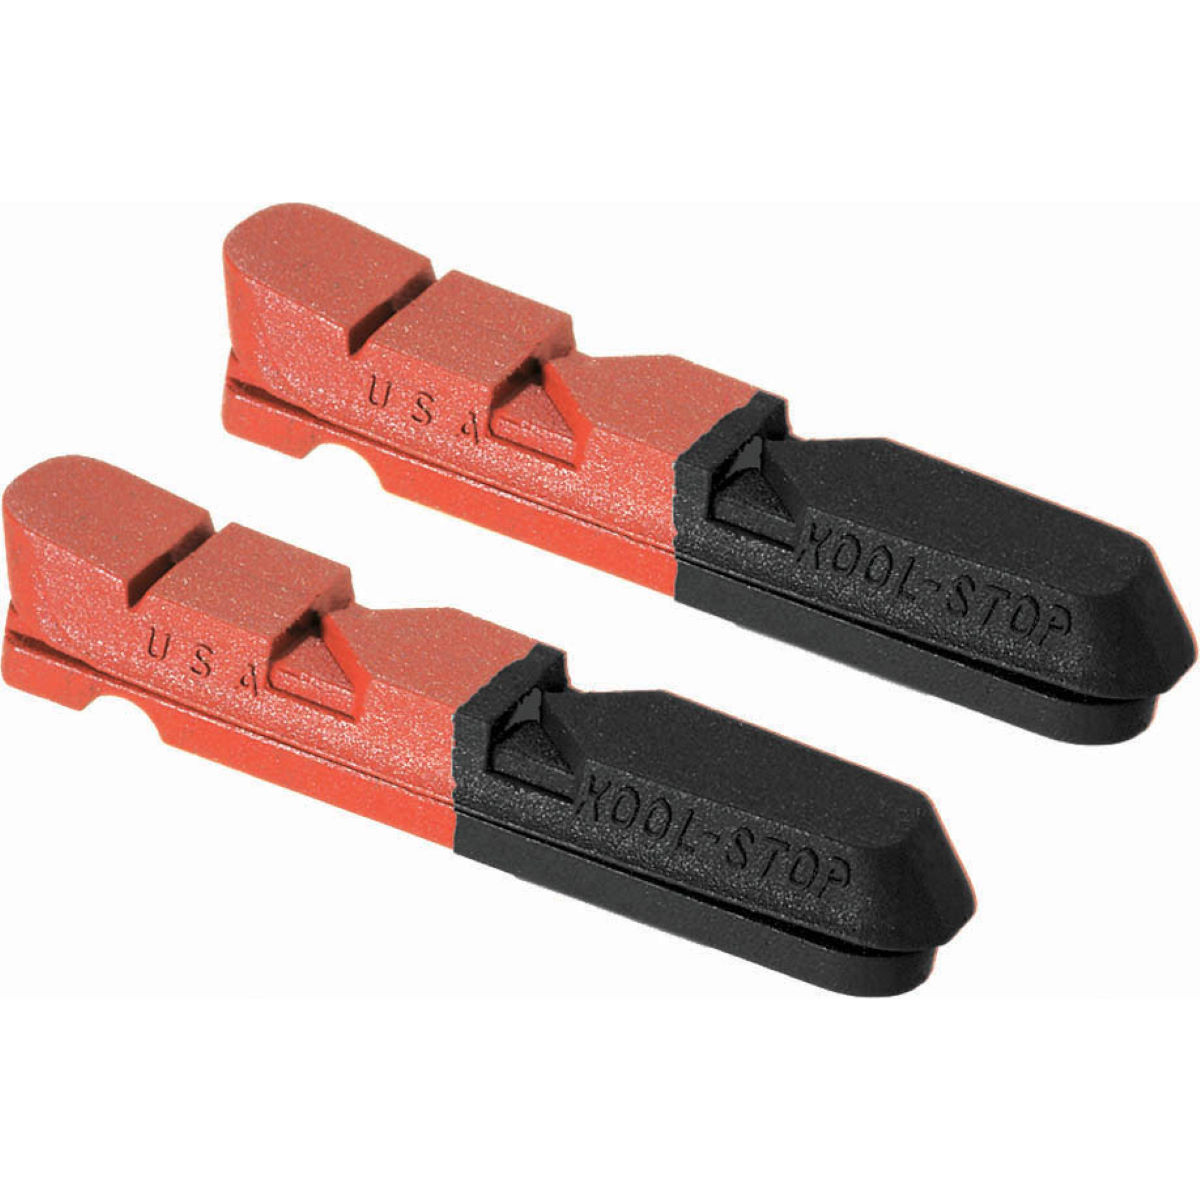 Kool Stop Kool Stop Dura Pair Of Cartridge Inserts Dual Compound   Rim Brake Pads